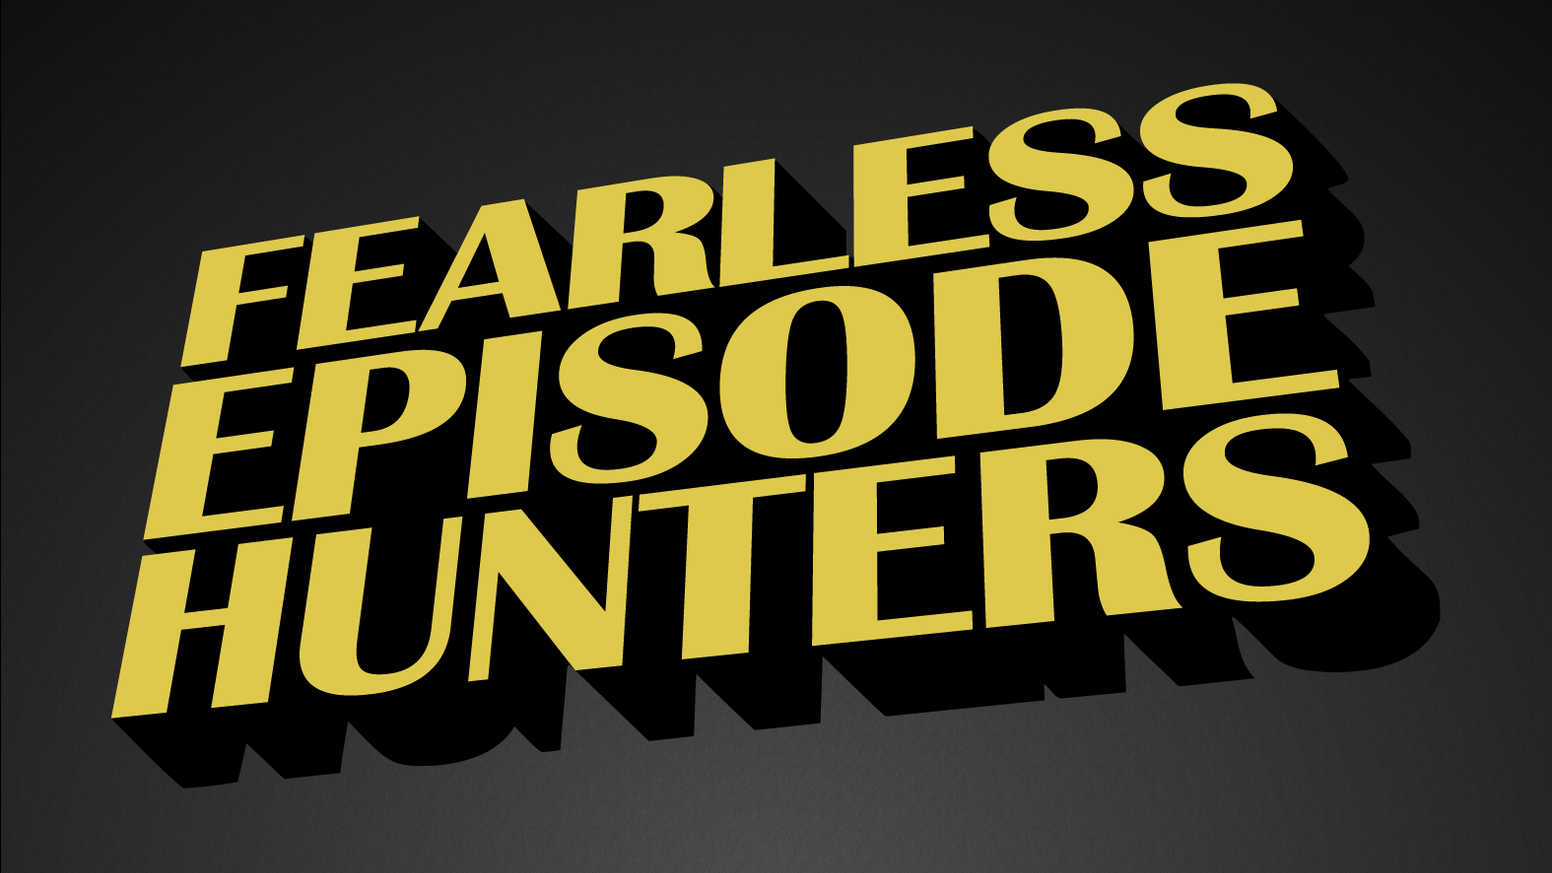 Fearless Episode Hunters\